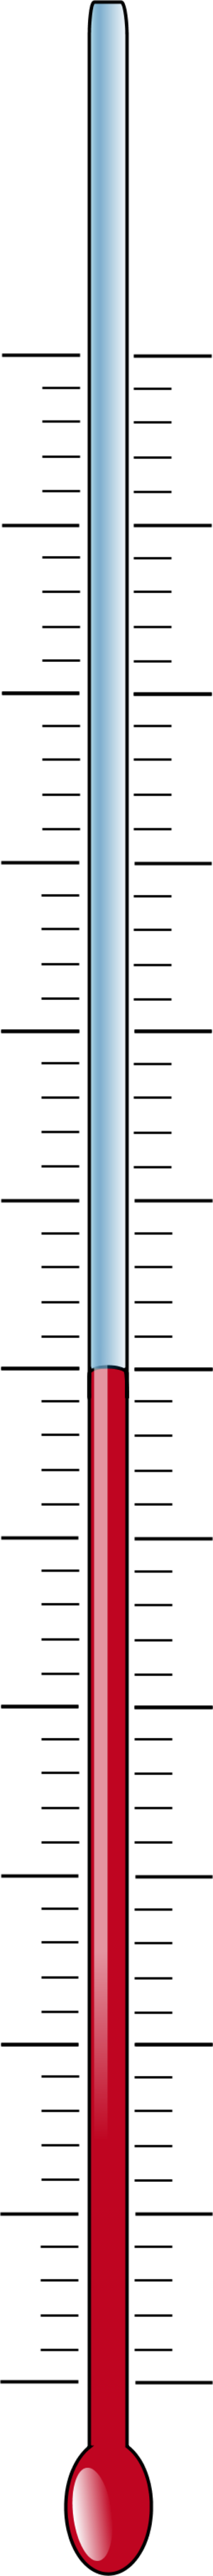 300x3627 Fundraising Thermometer Clip Art Free Clipart Images